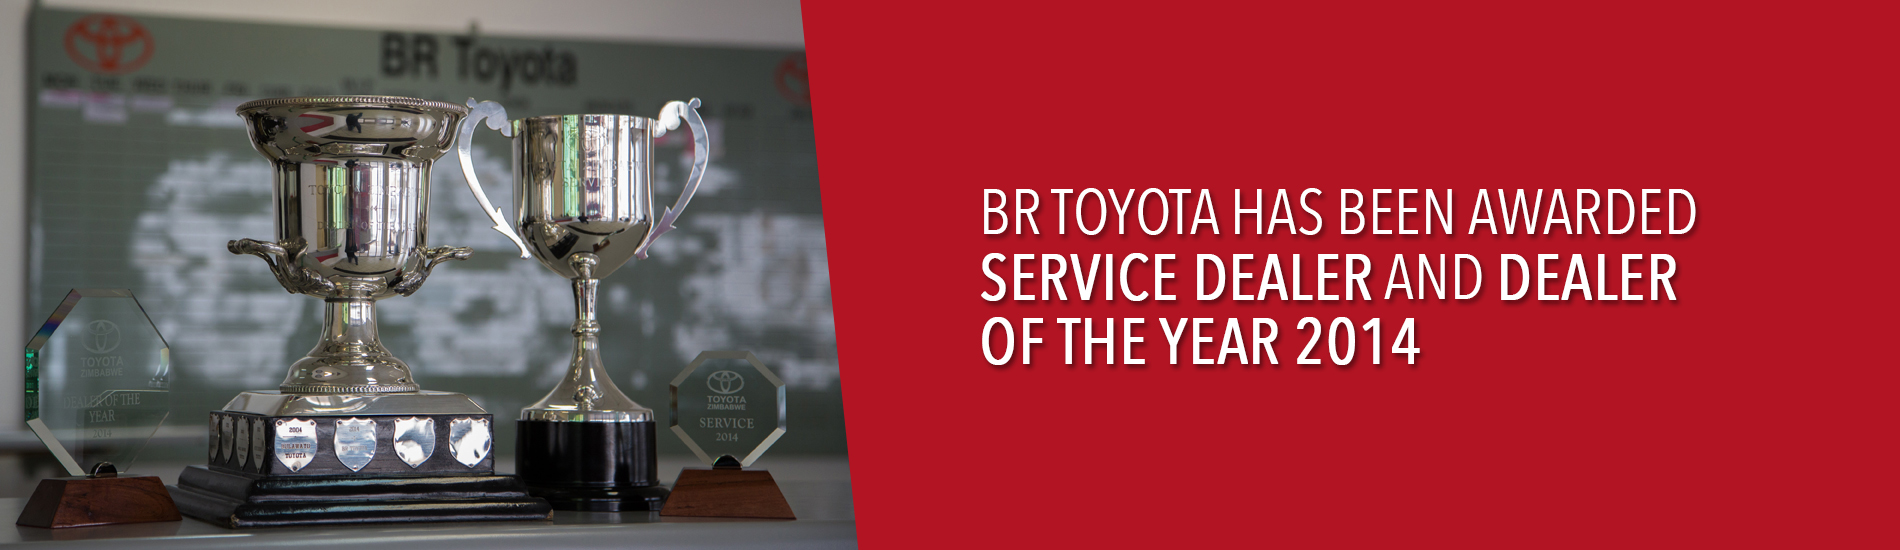 BR Toyota Dealer of the Year